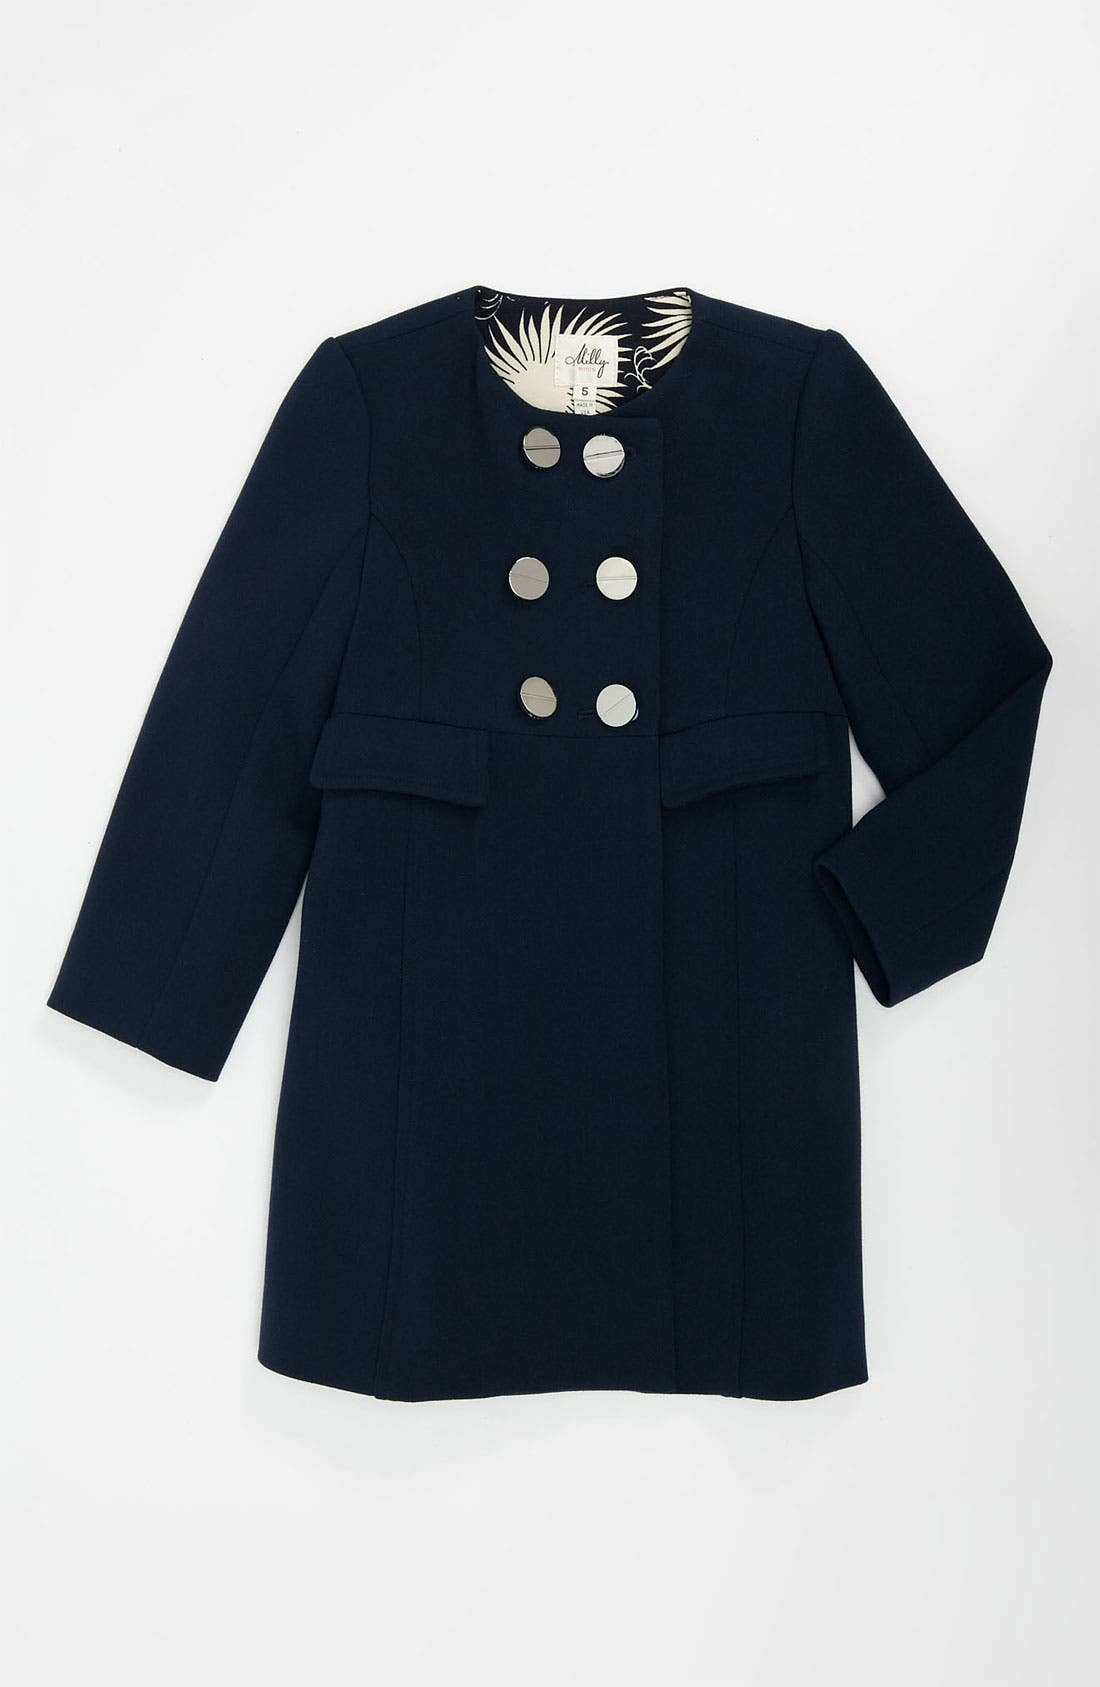 Alternate Image 1 Selected - Milly Minis 'Riley' Double Breasted Coat (Little Girls & Big Girls)